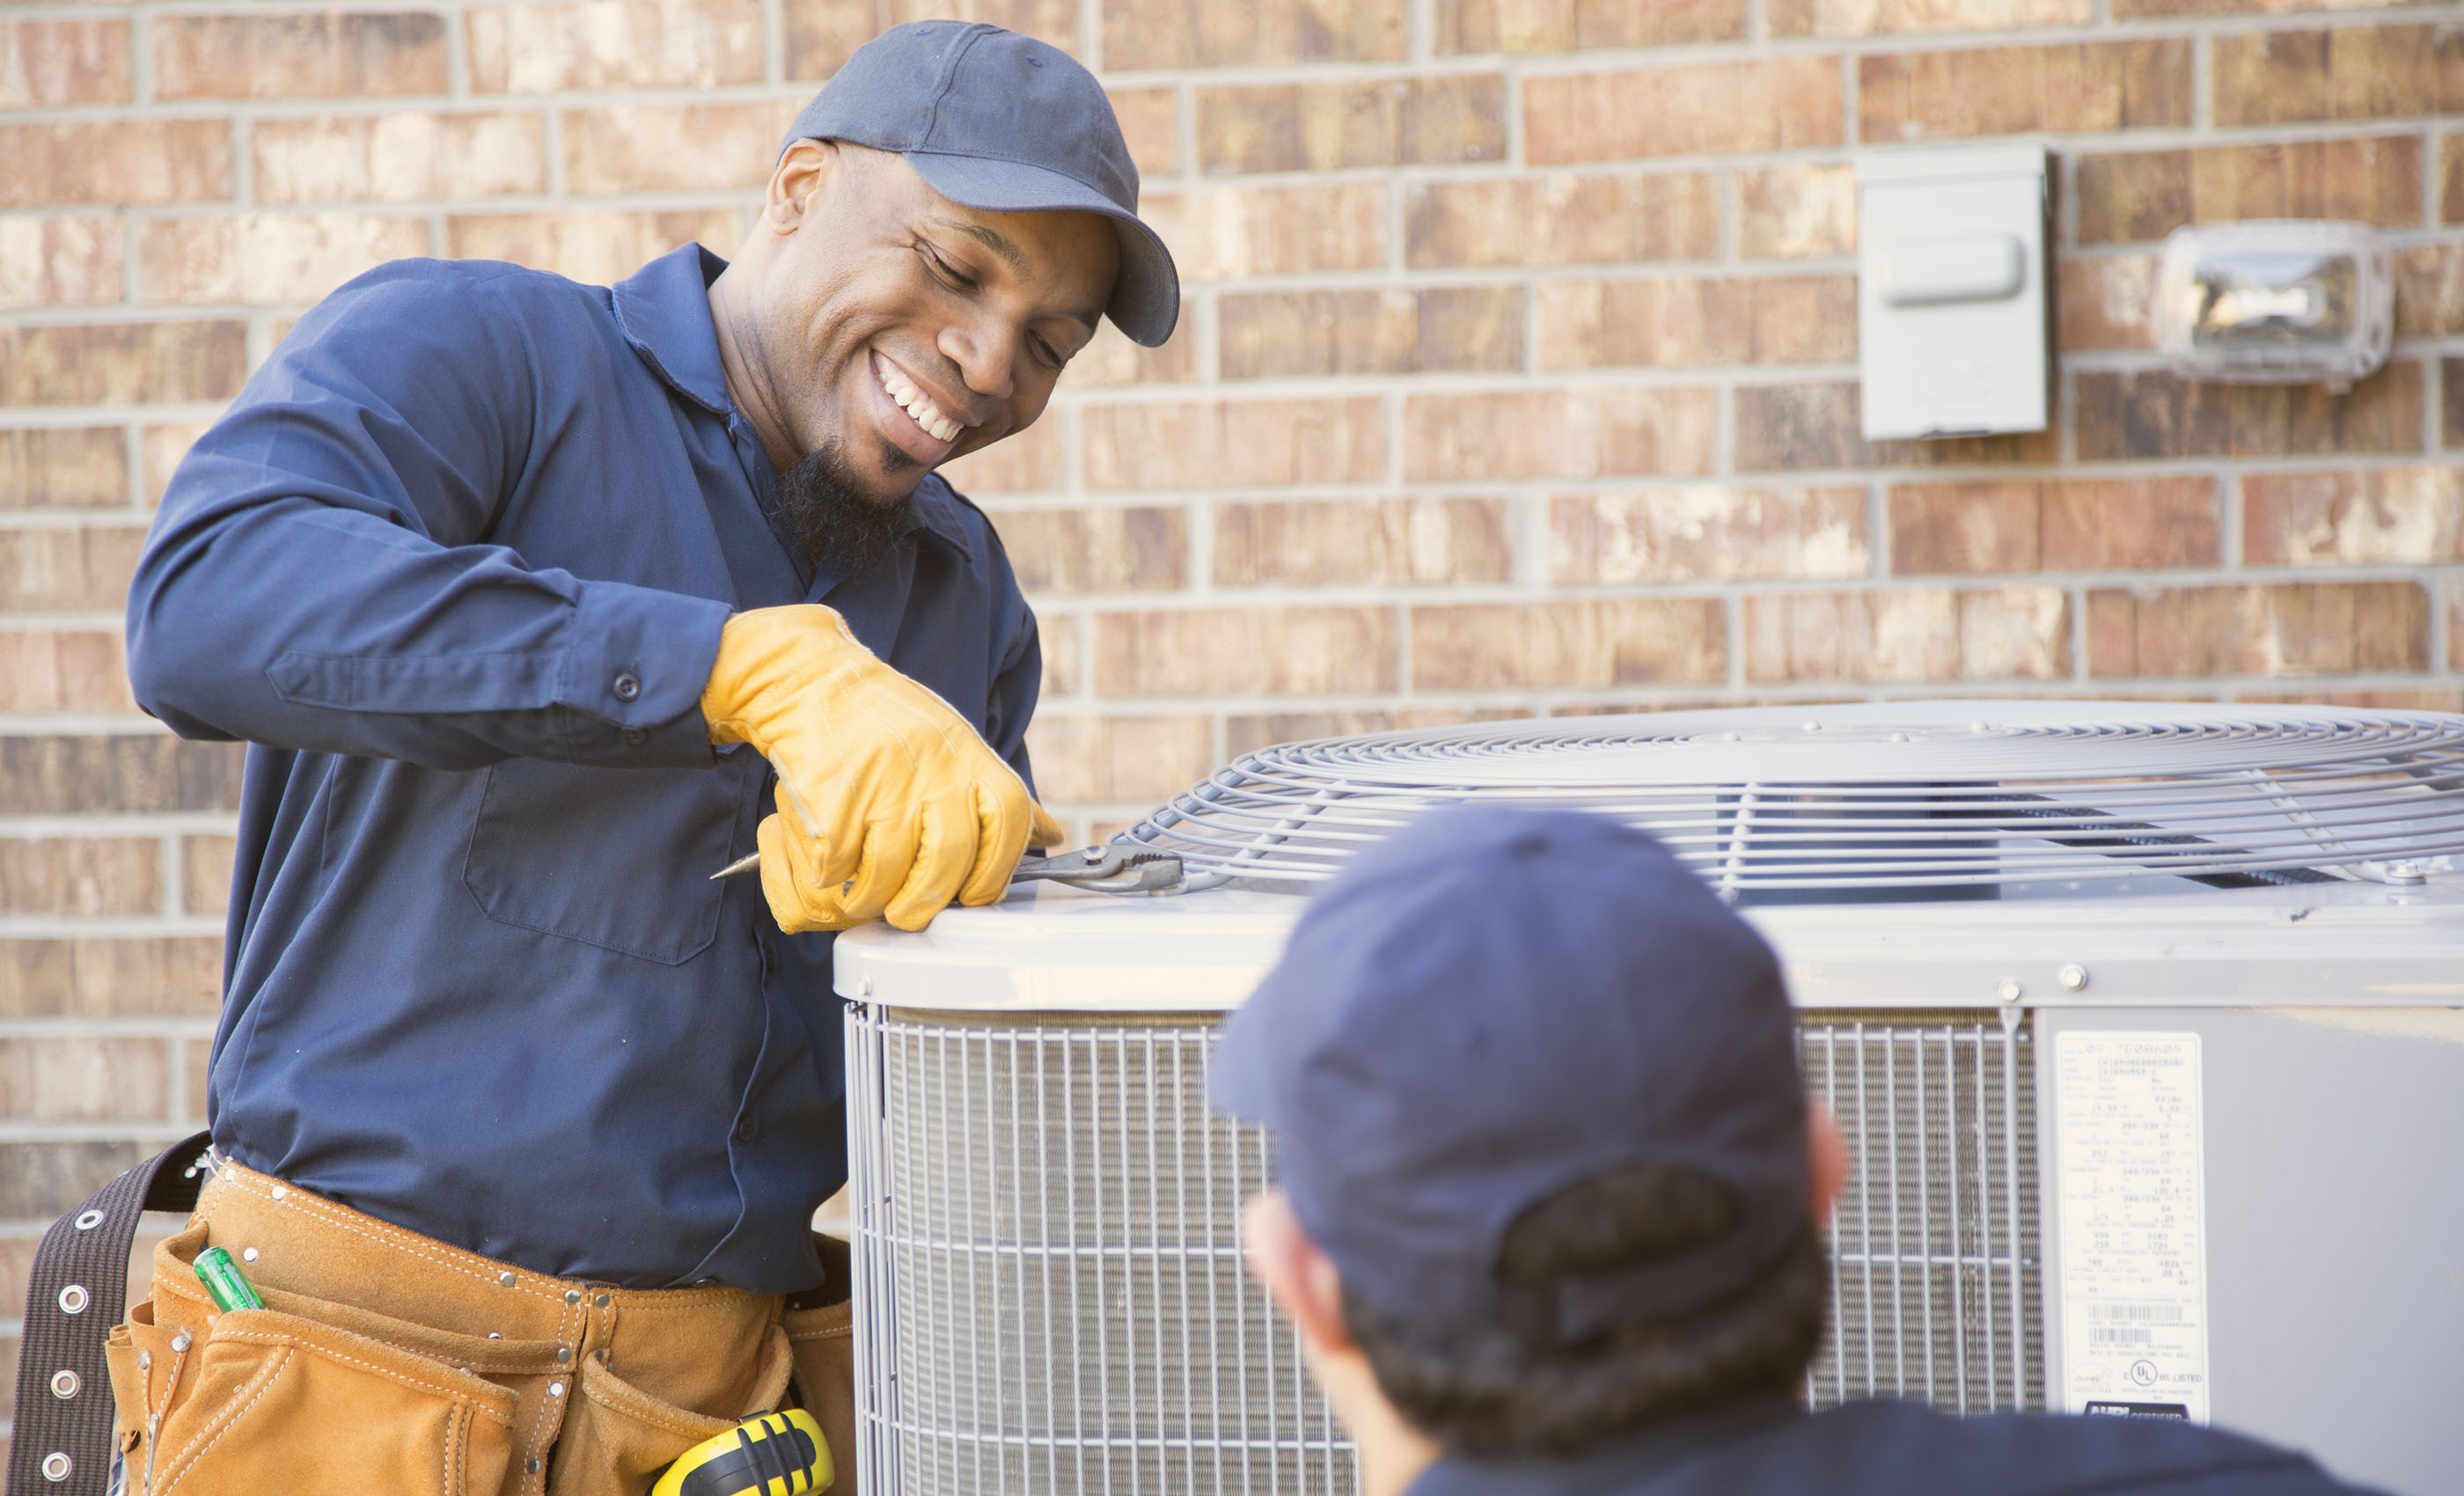 An ORHP network service provider repairs an air conditioning unit.